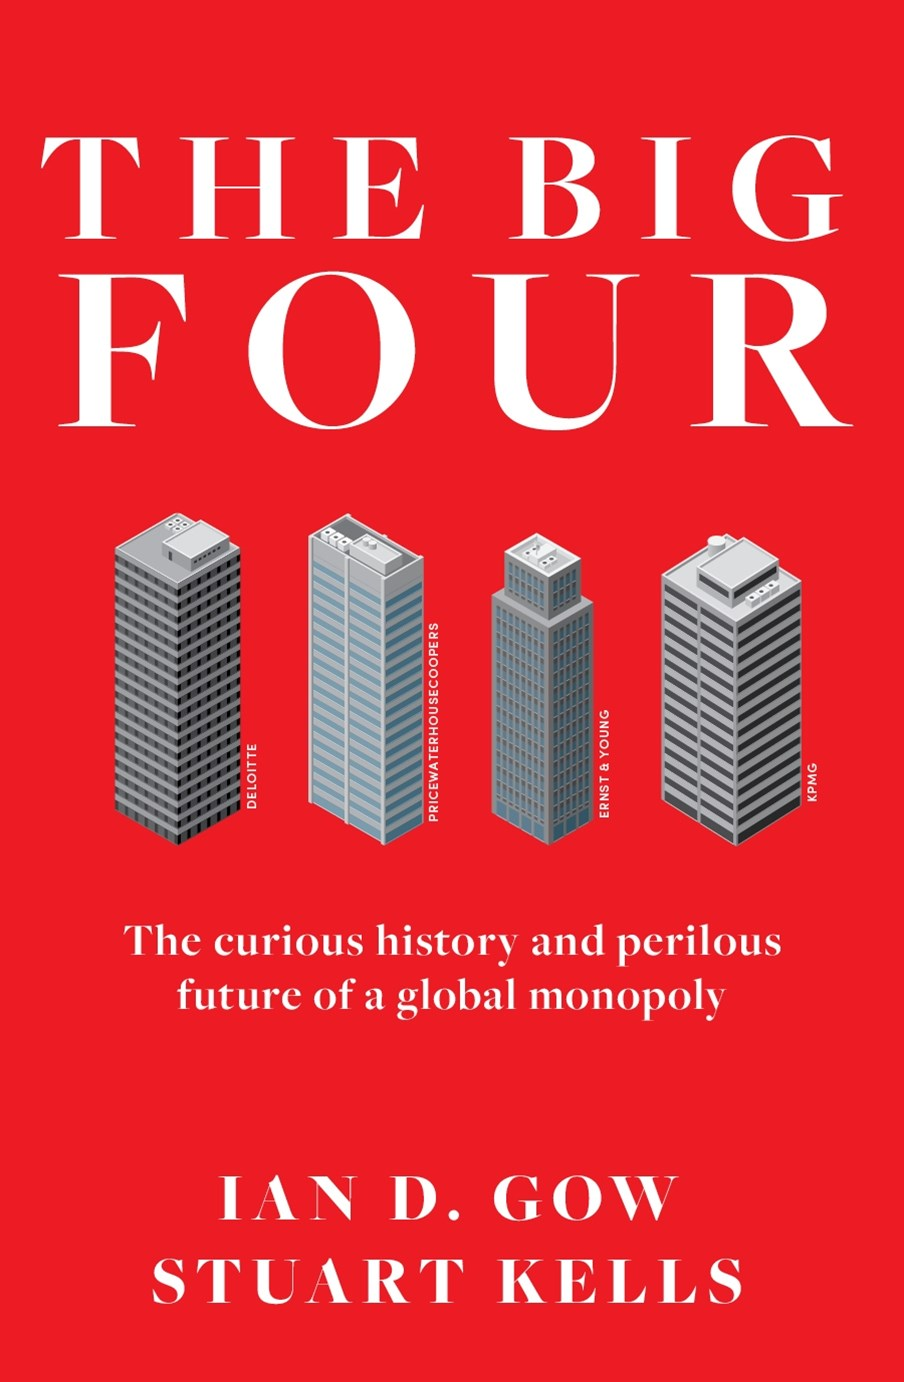 The Big Four: The Curious Past and Perilous Future of Global Accounting Monopoly